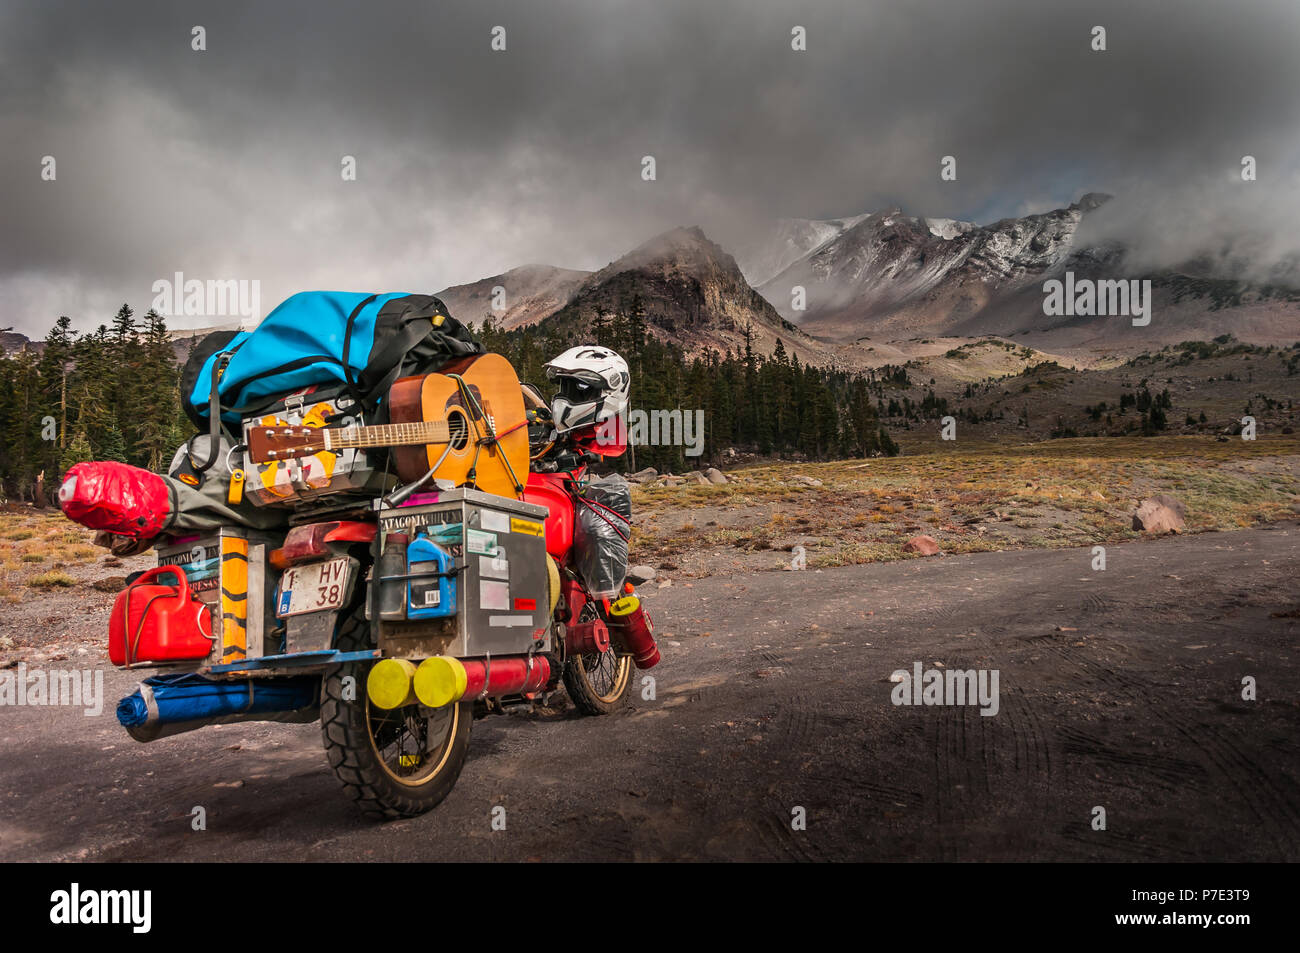 Loaded touring motorcycle on roadside with dramatic sky over Mount Shasta, California, USA - Stock Image